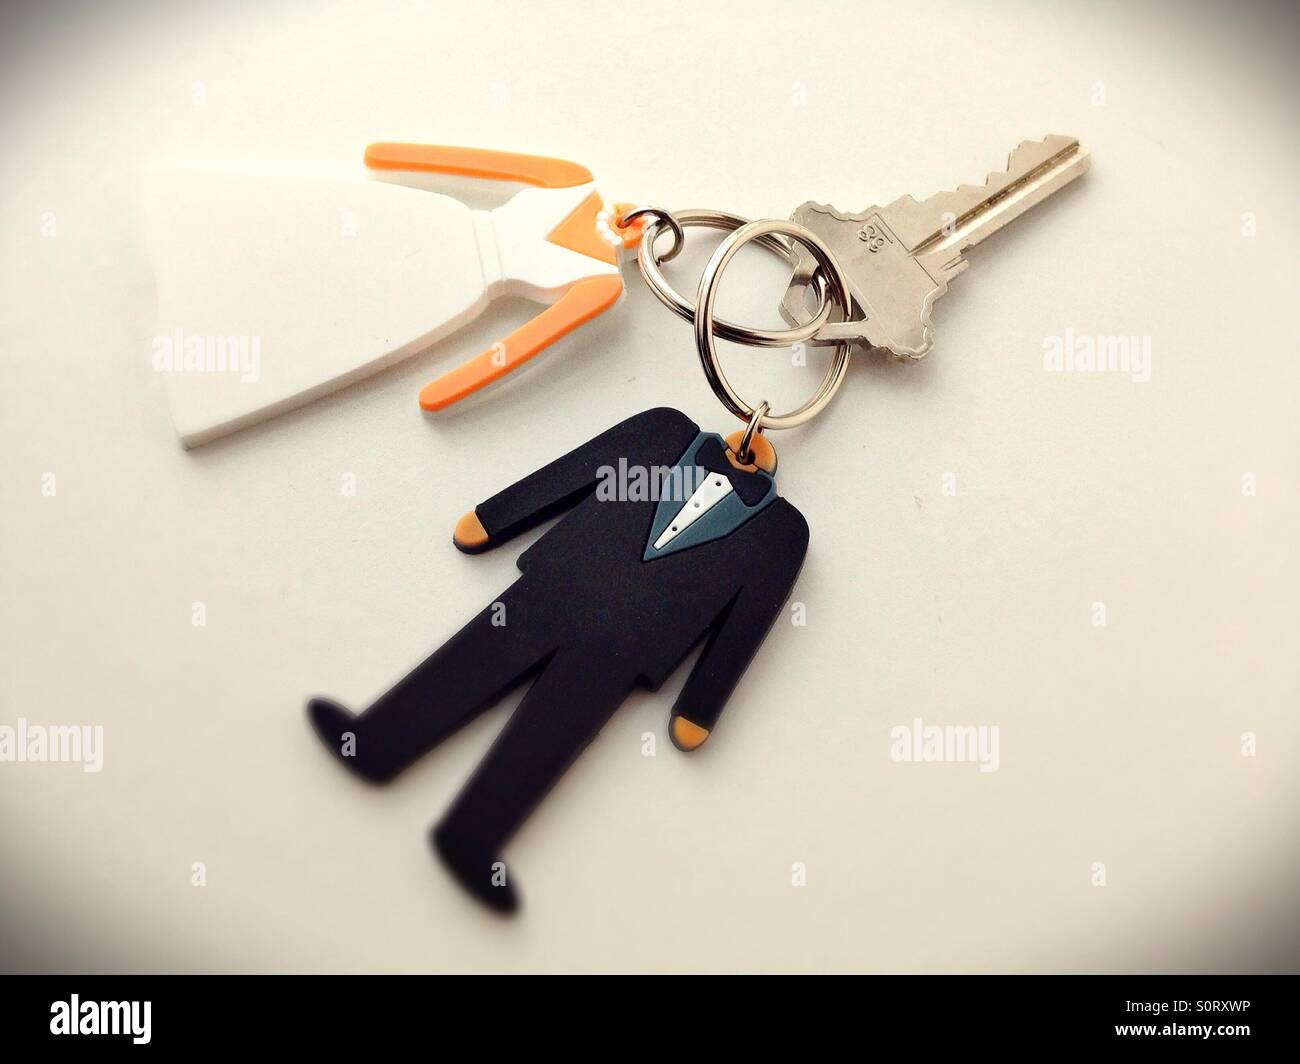 Two key rings in the shape of a bride and groom joined and sharing one key. - Stock Image